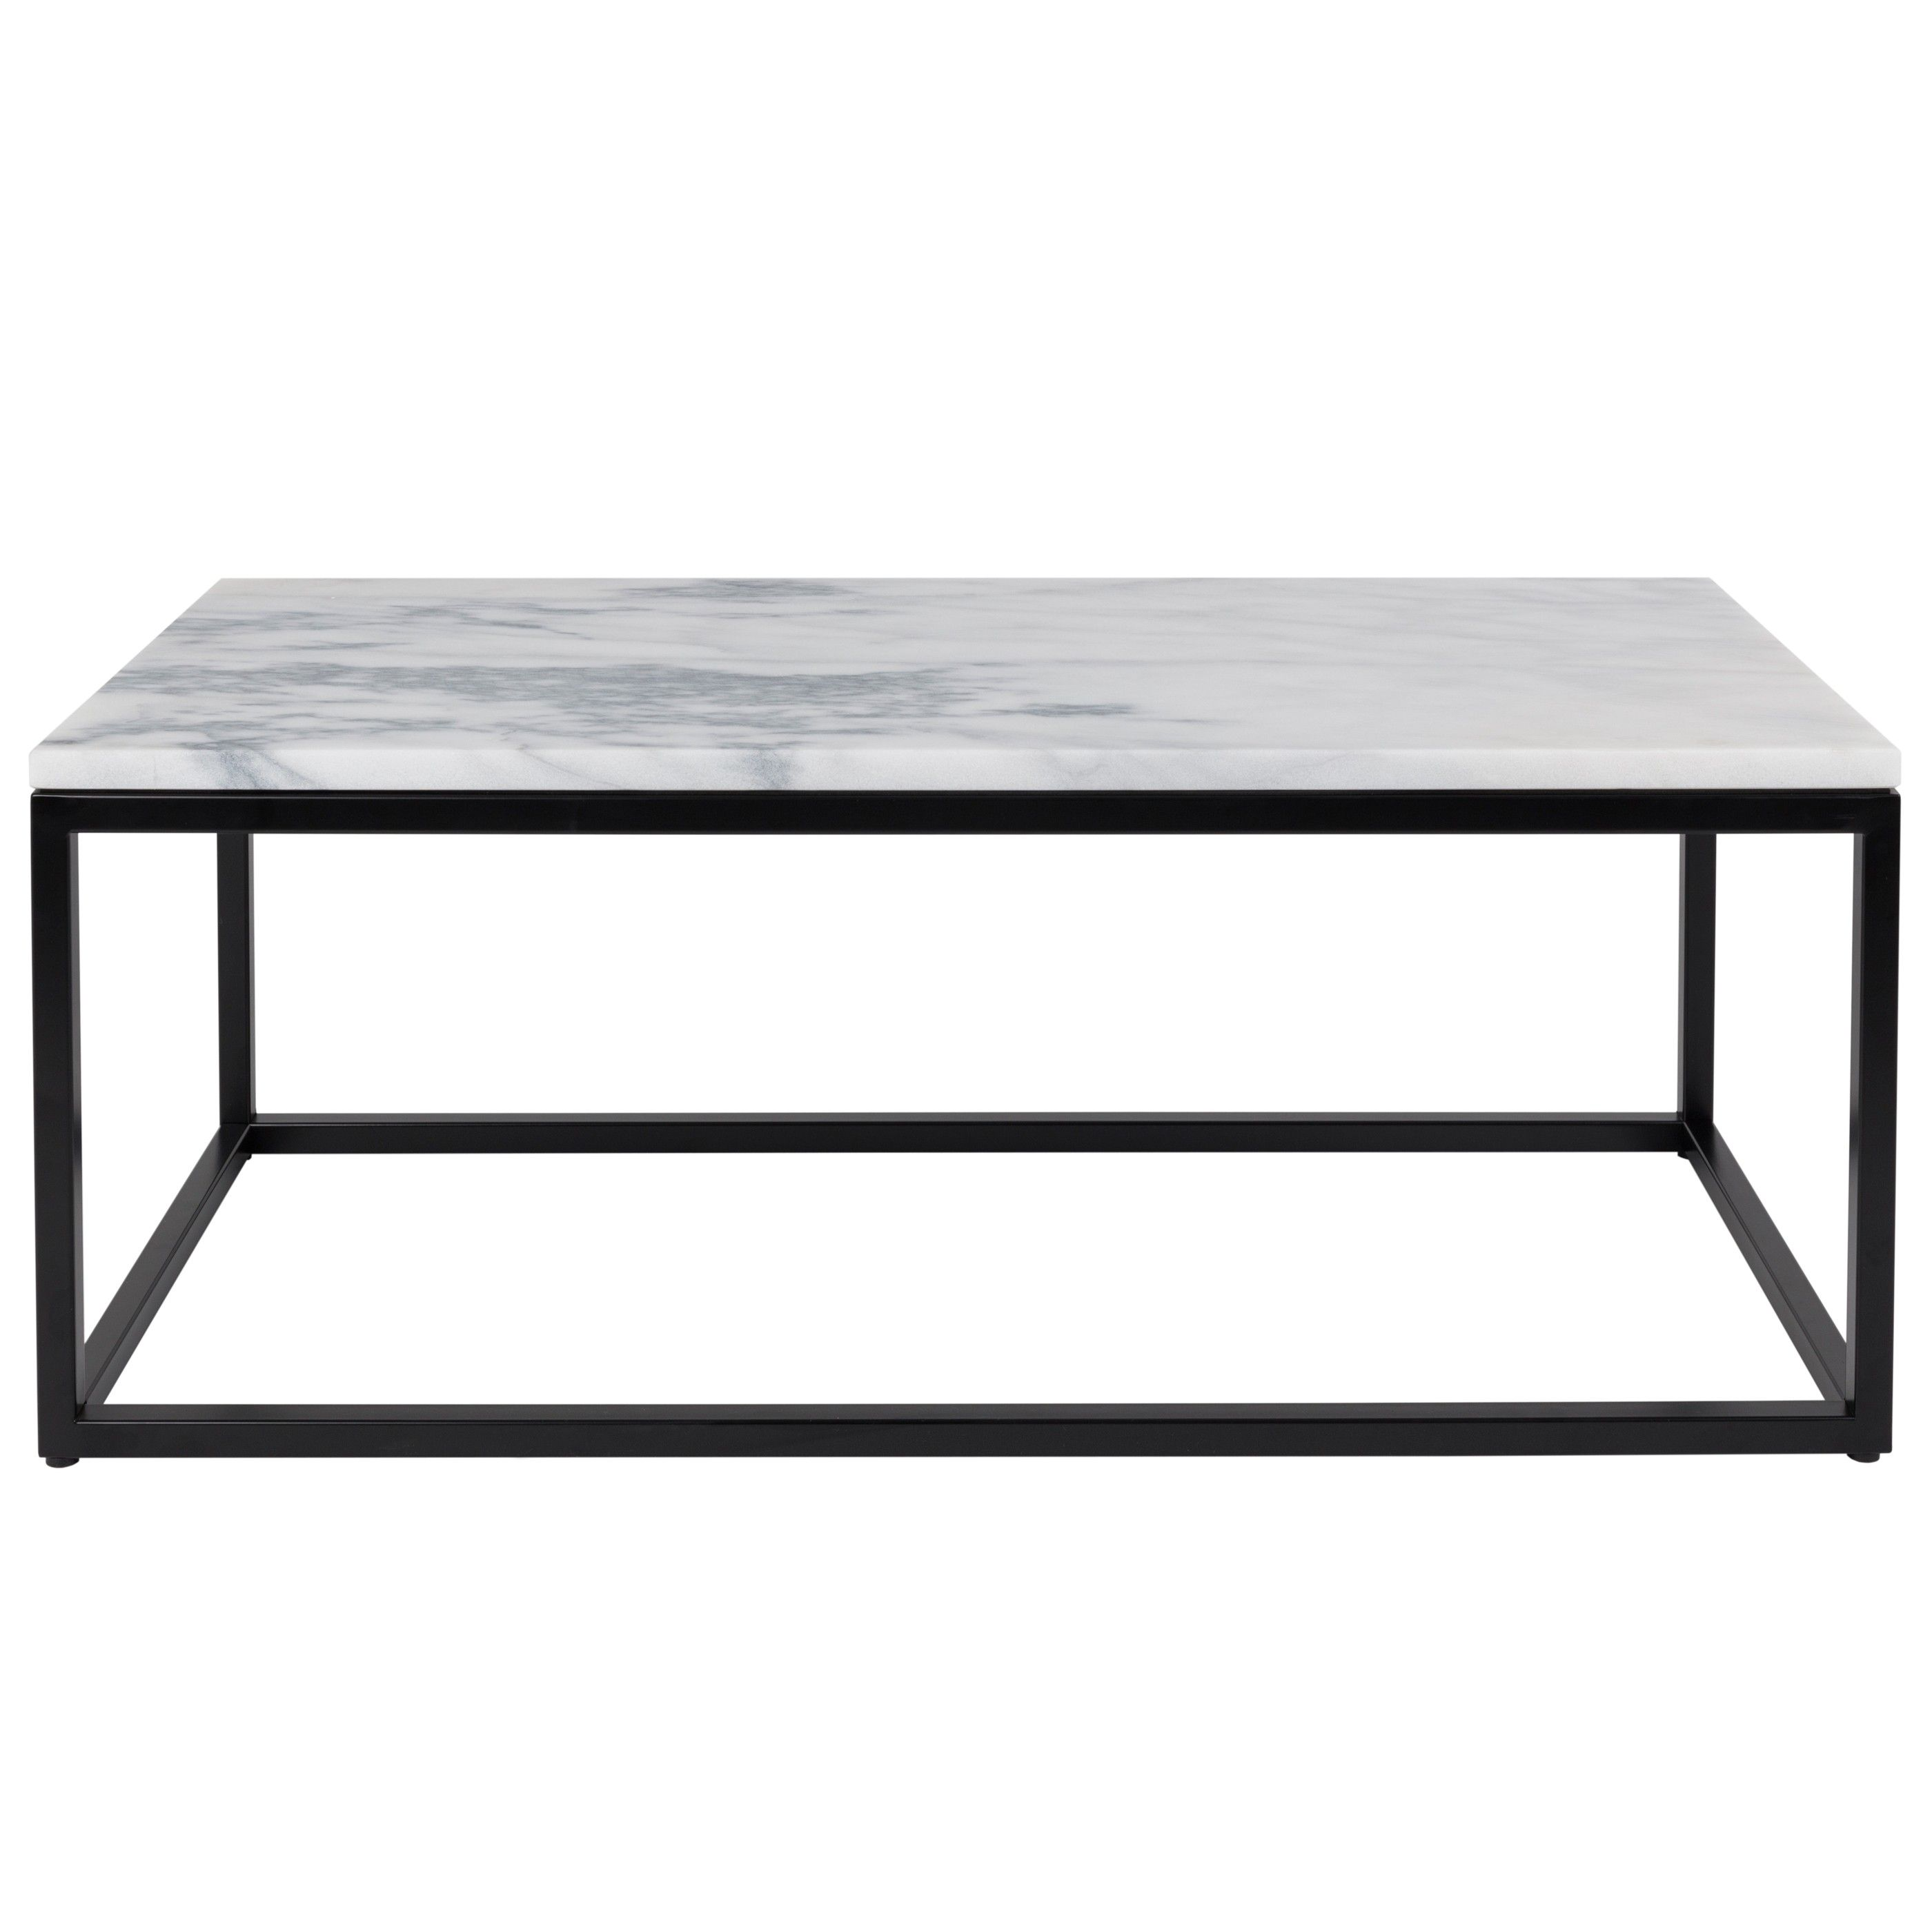 Square Marble Top Aviero Outdoor Occasional Coffee Table: Zuiver Marble Power Salontafel